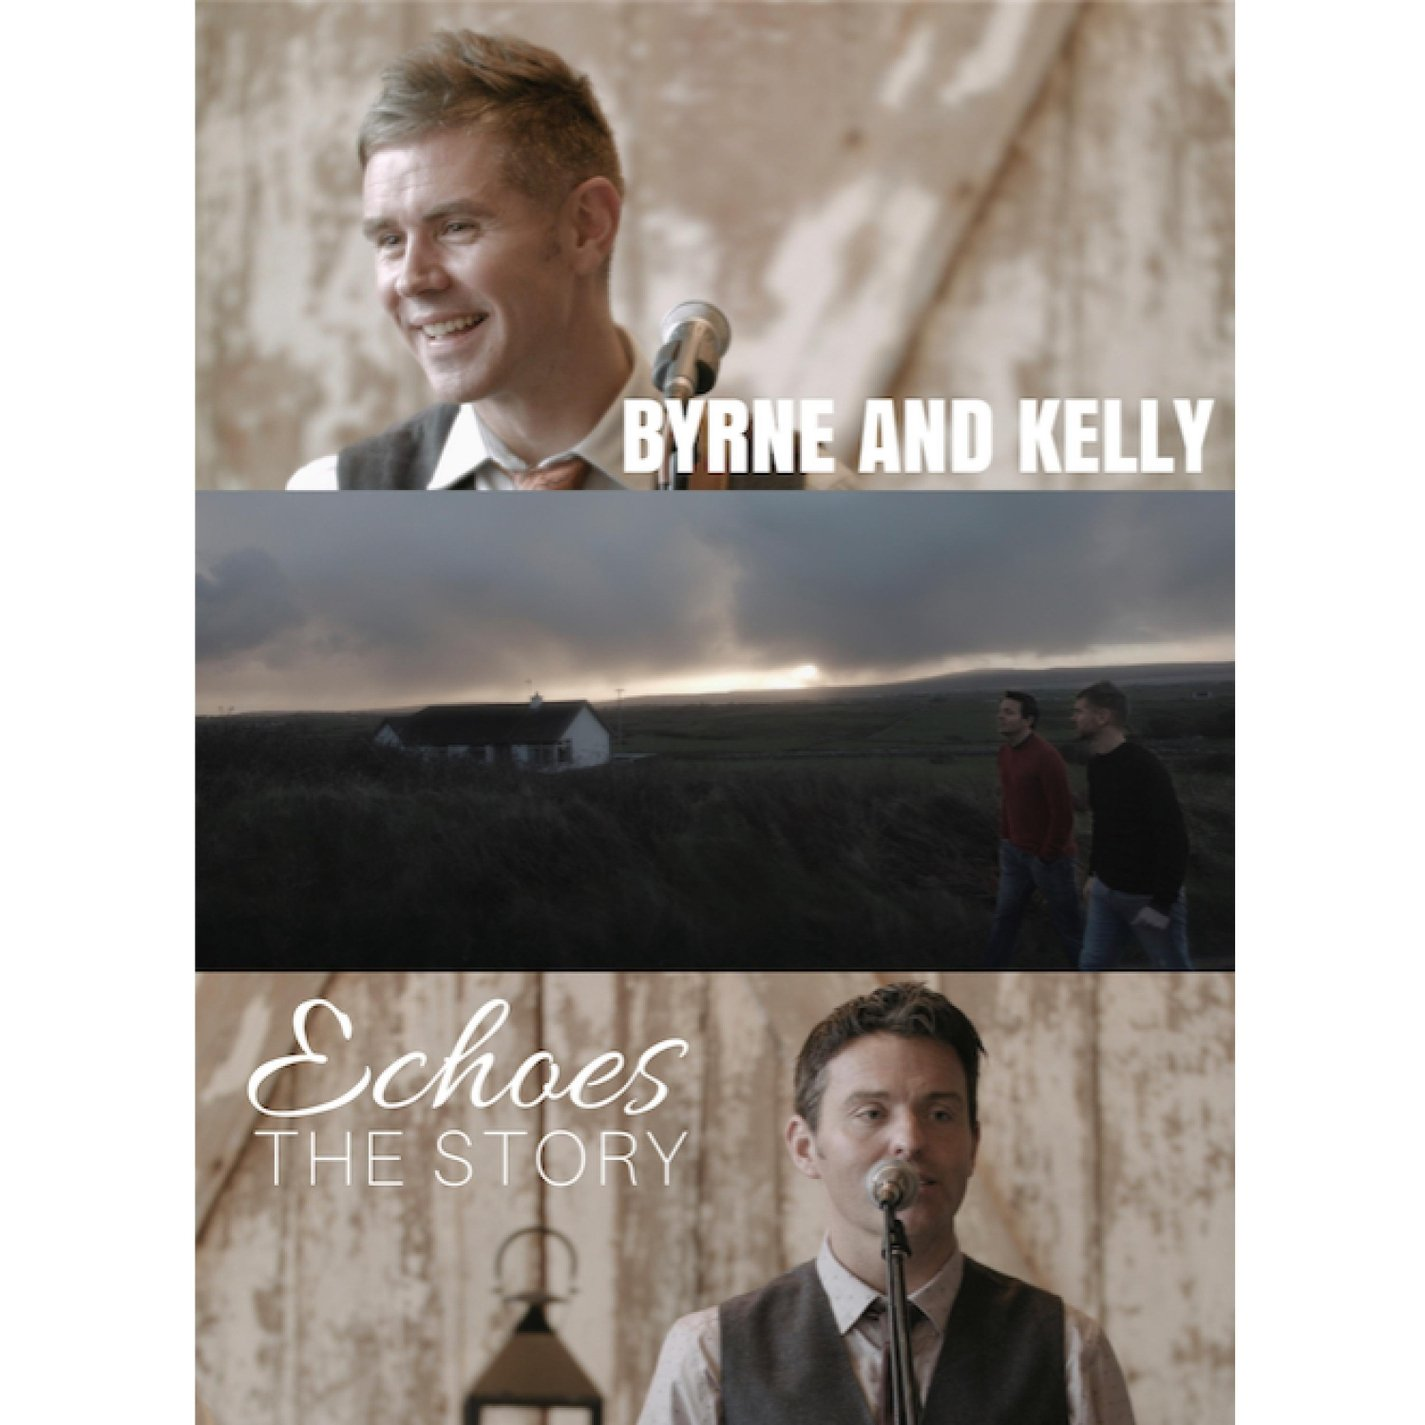 DVD : BYRNE - KELLY - Echoes: The Story (DVD)